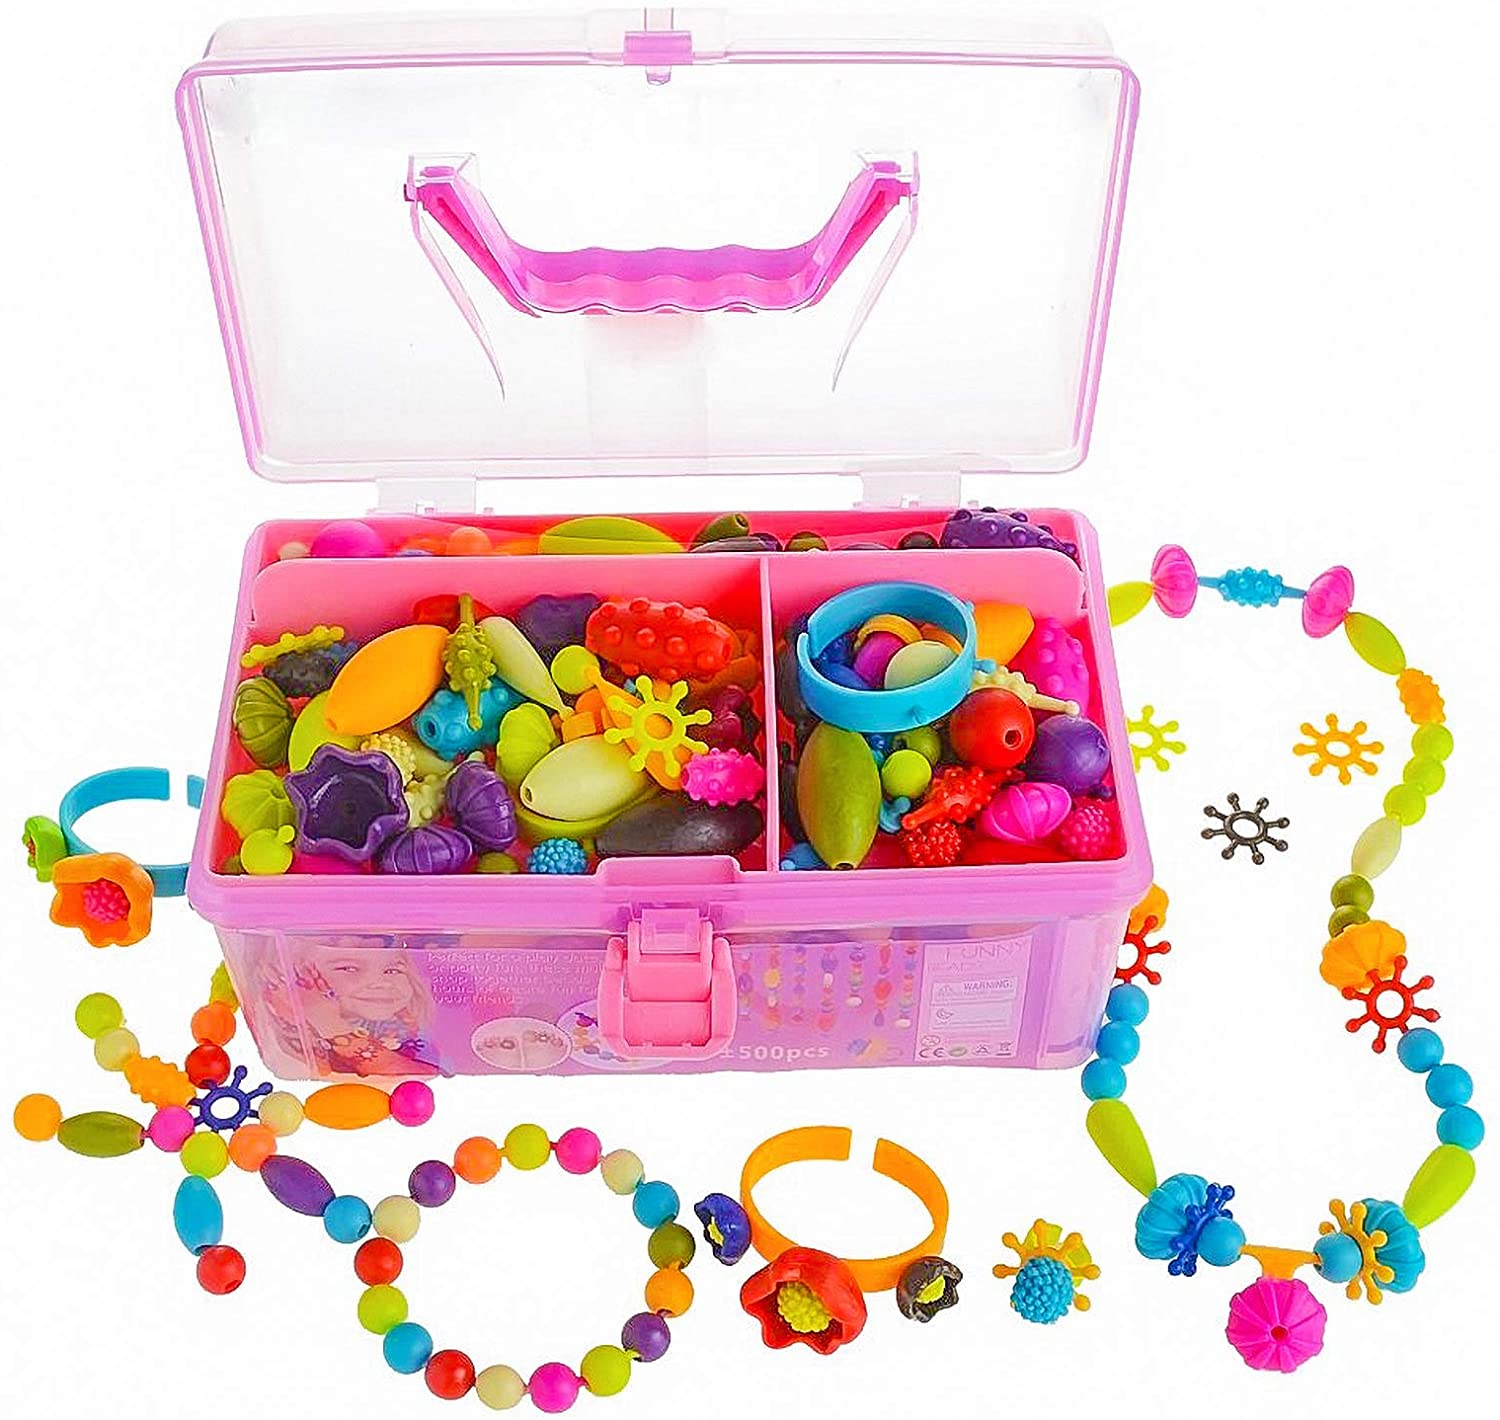 Gili New arrival Pop Beads Jewelry Making Kit Free shipping anywhere in the nation for 7 Old 5 Littl Year 4 6